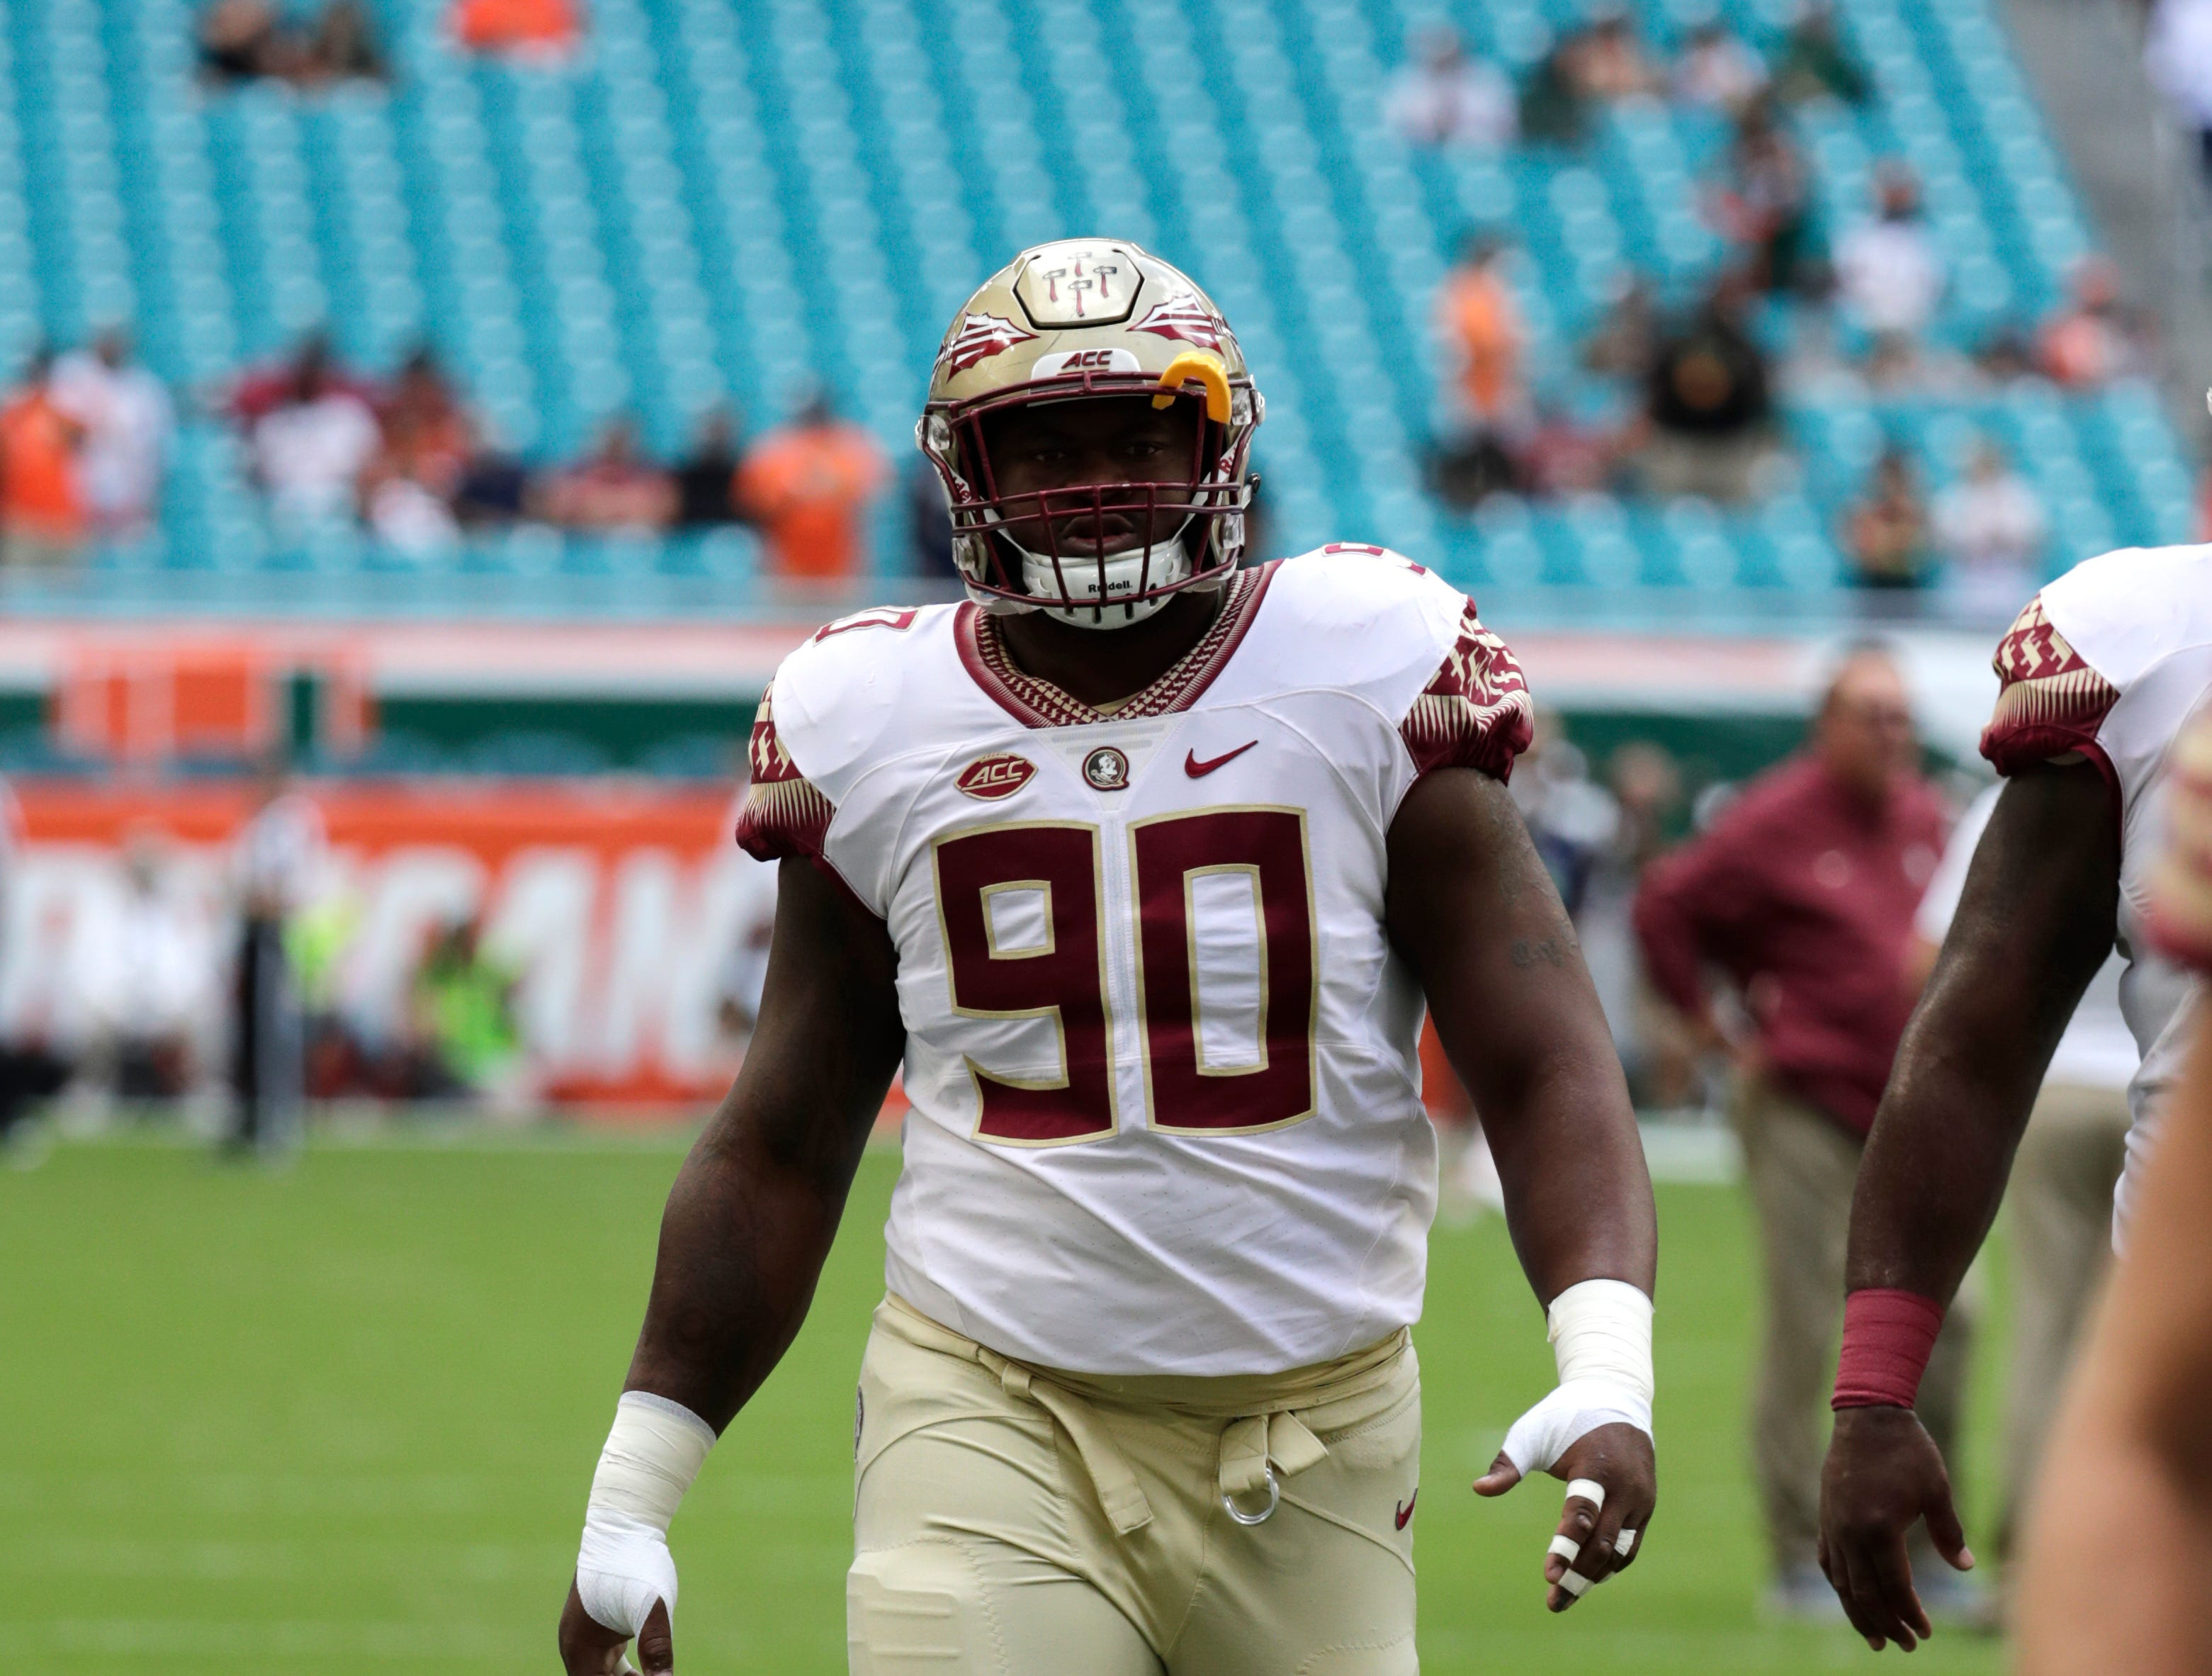 Florida State defensive tackle Demarcus Christmas warms up before an NCAA college football game against Miami, Saturday, Oct. 6, 2018, in Miami Gardens, Fla. (AP Photo/Lynne Sladky)